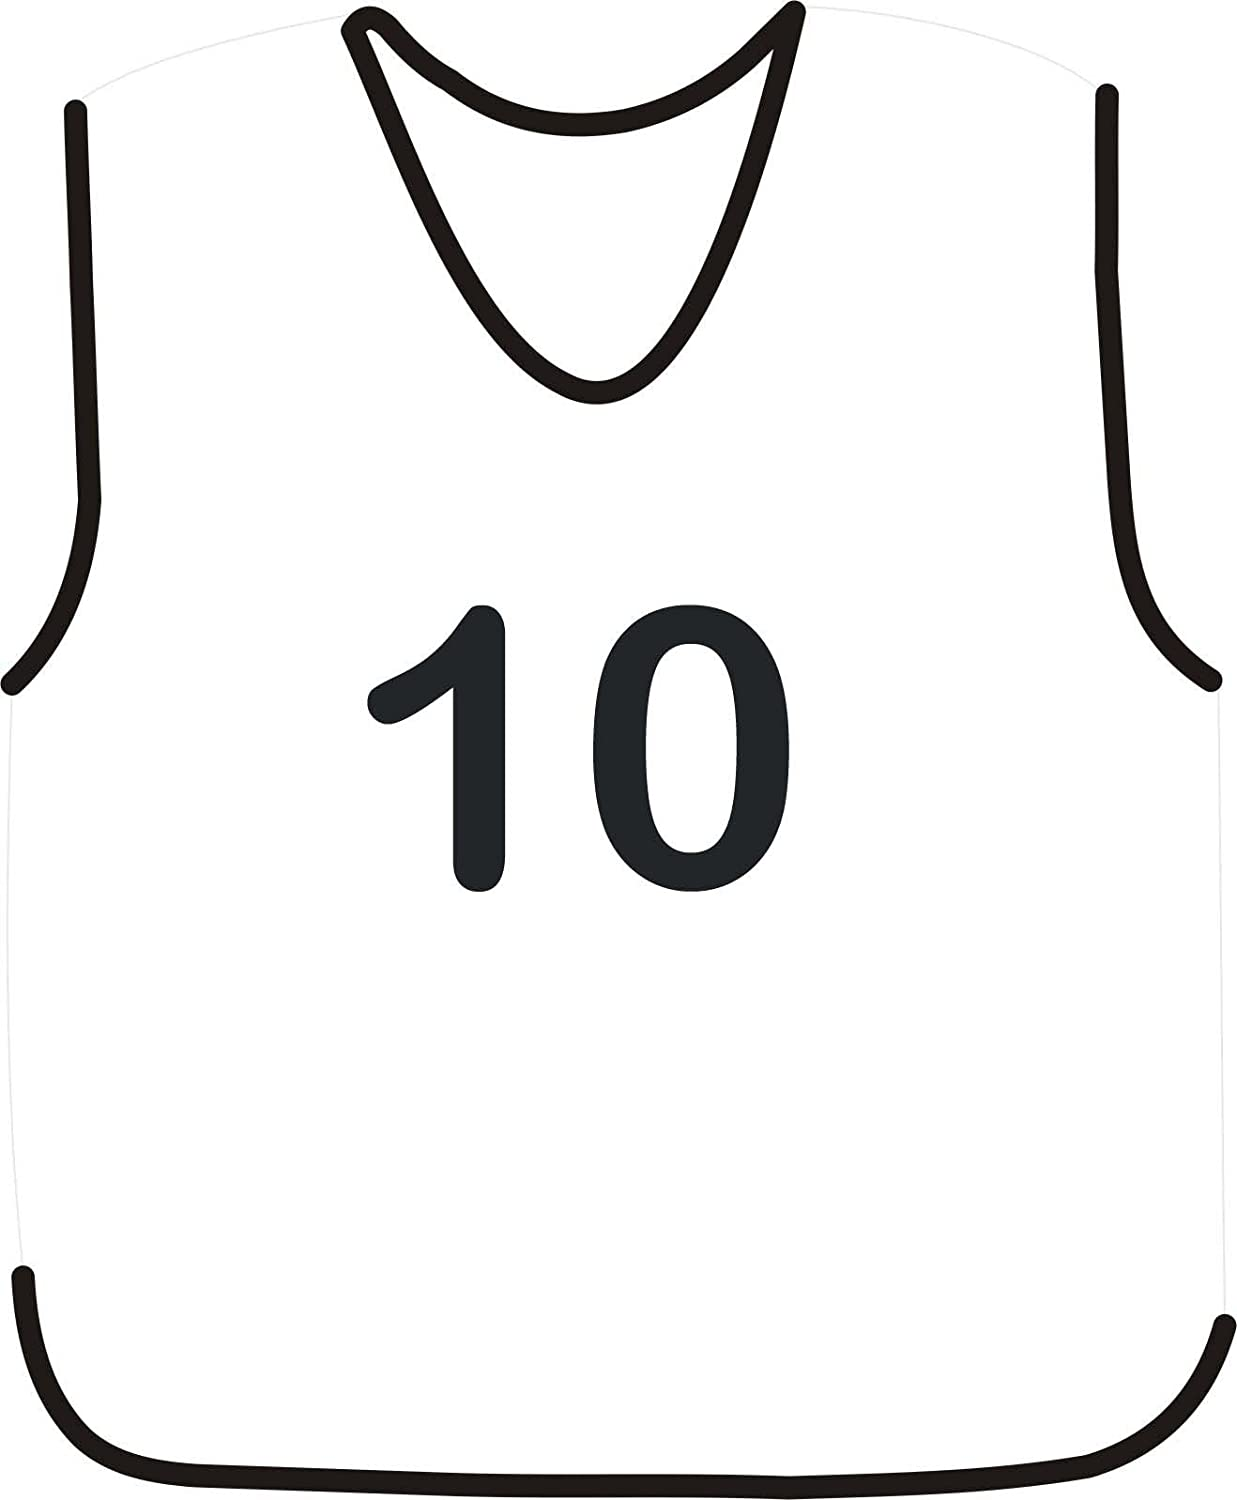 10 FOOTBALL MESH TRAINING SPORTS BIBS NUMBERED (1-10 OR number of your choice) PROSTYLE SPORTS